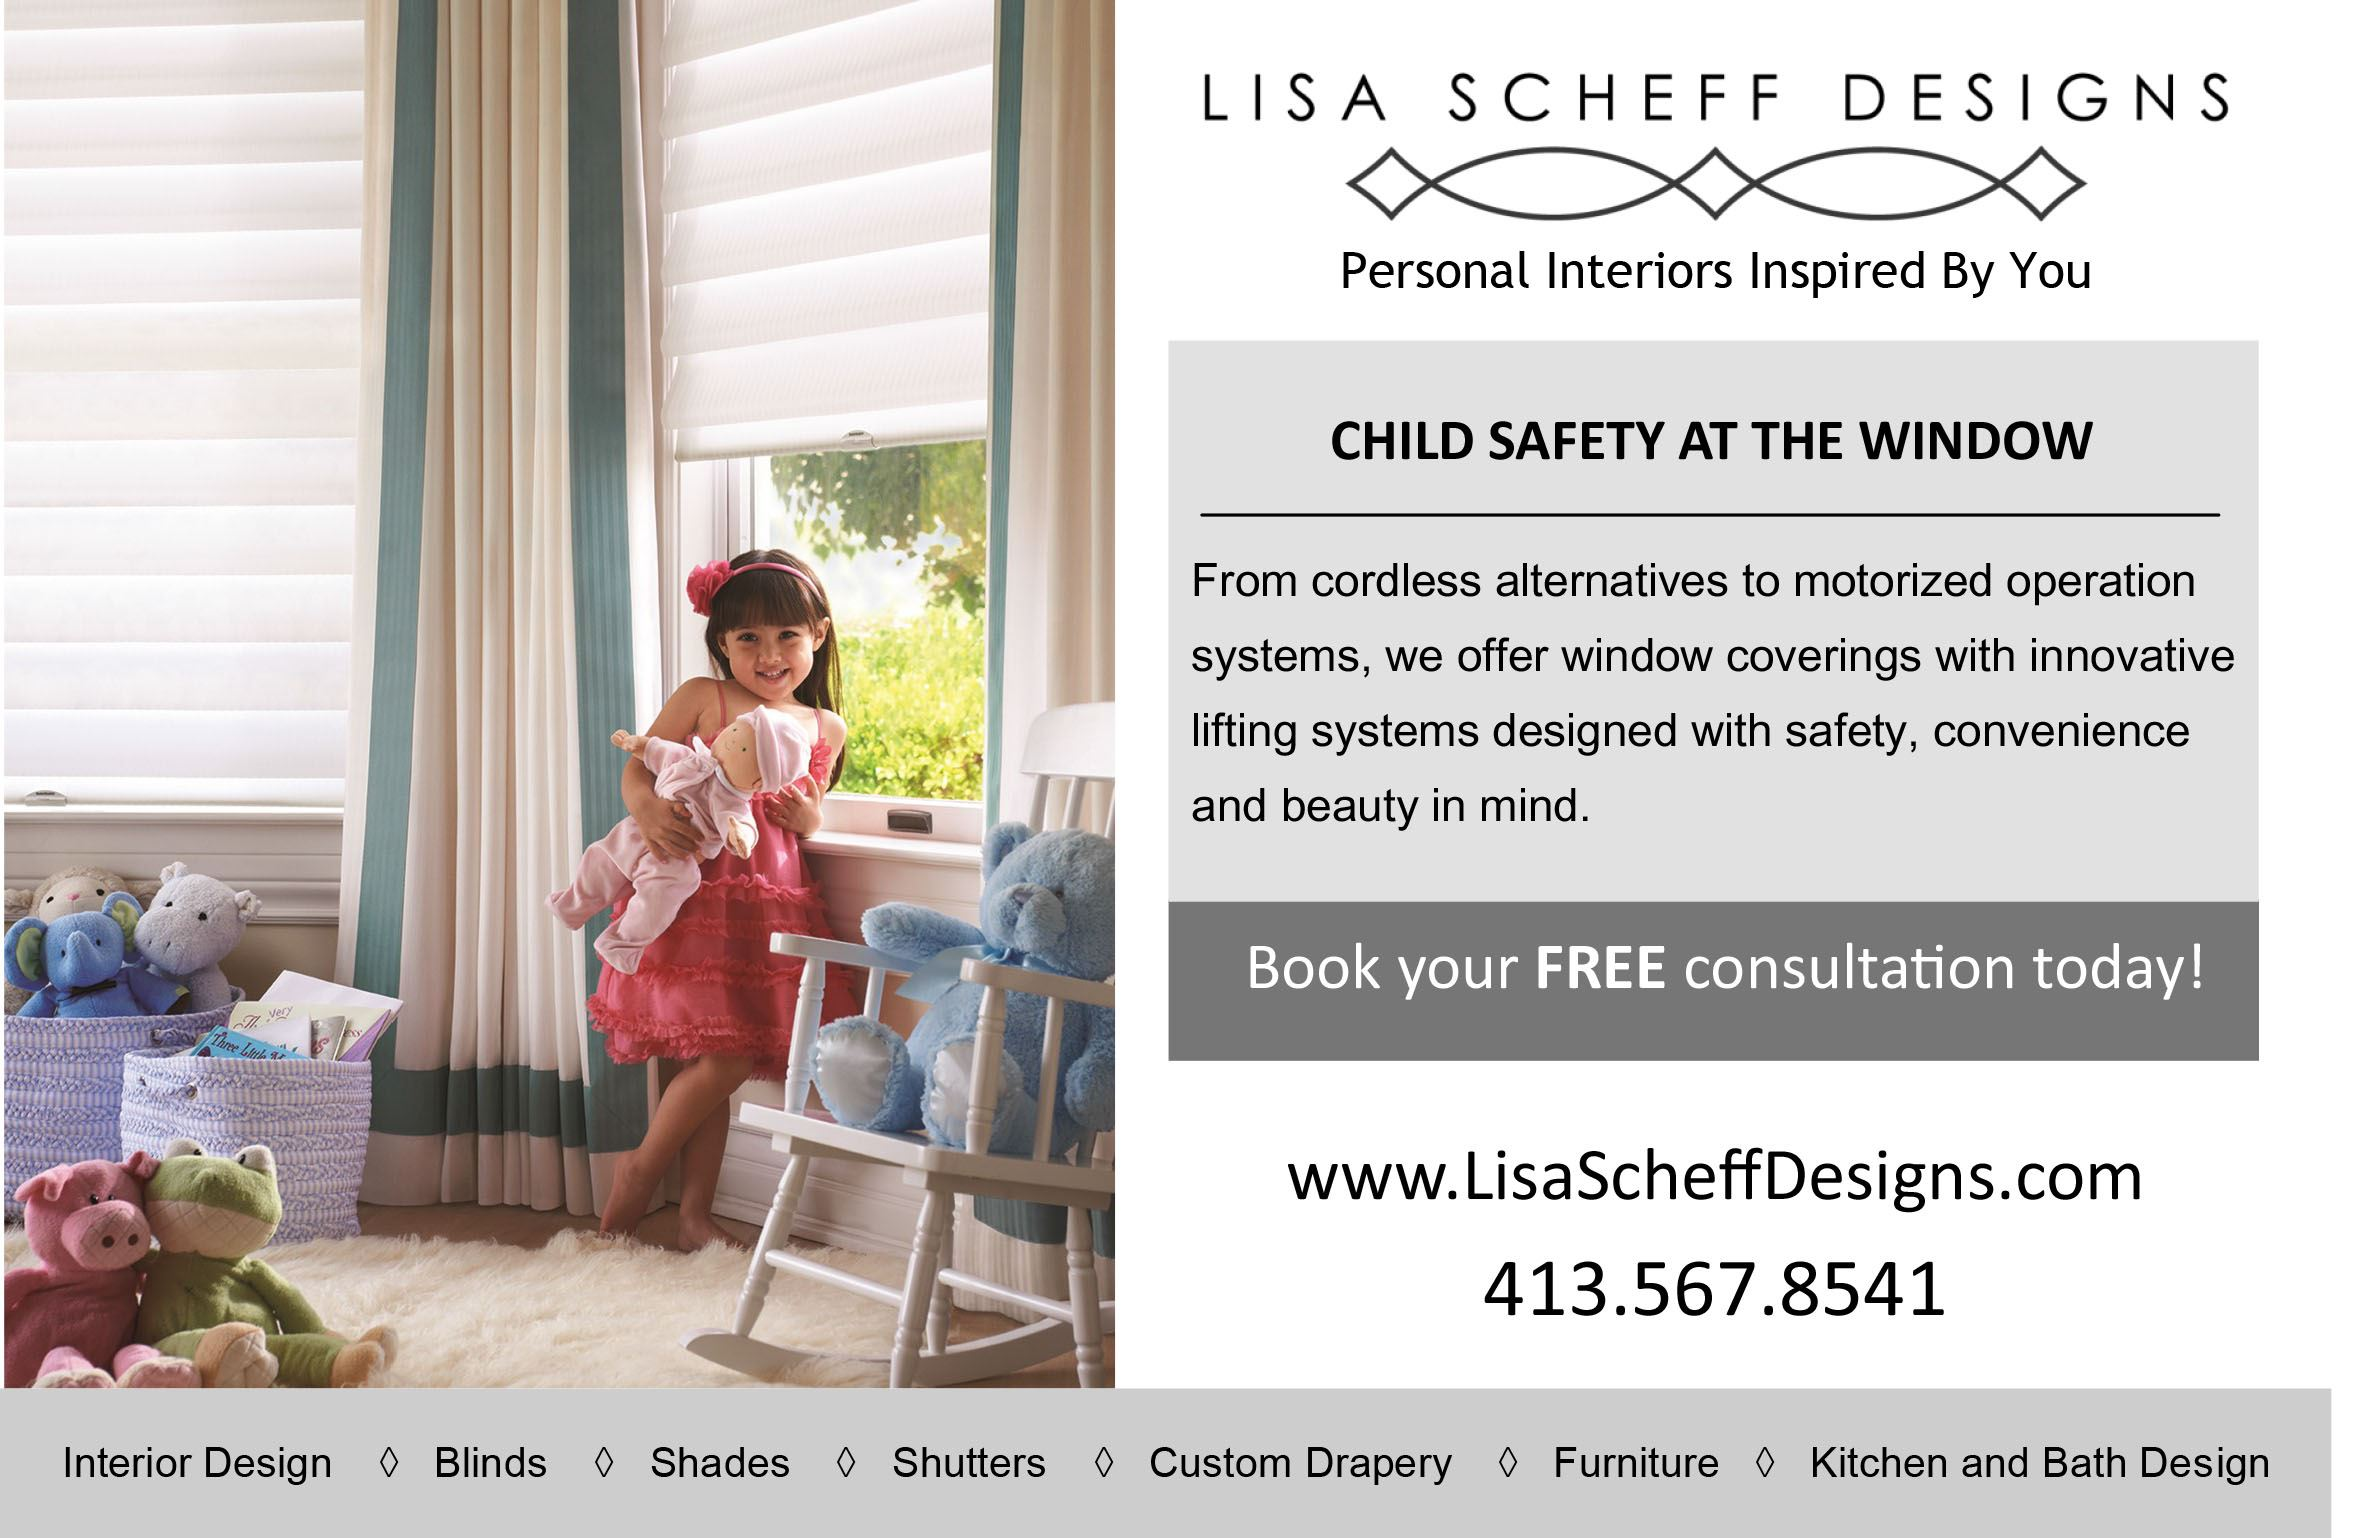 Lisa Scheff Designs